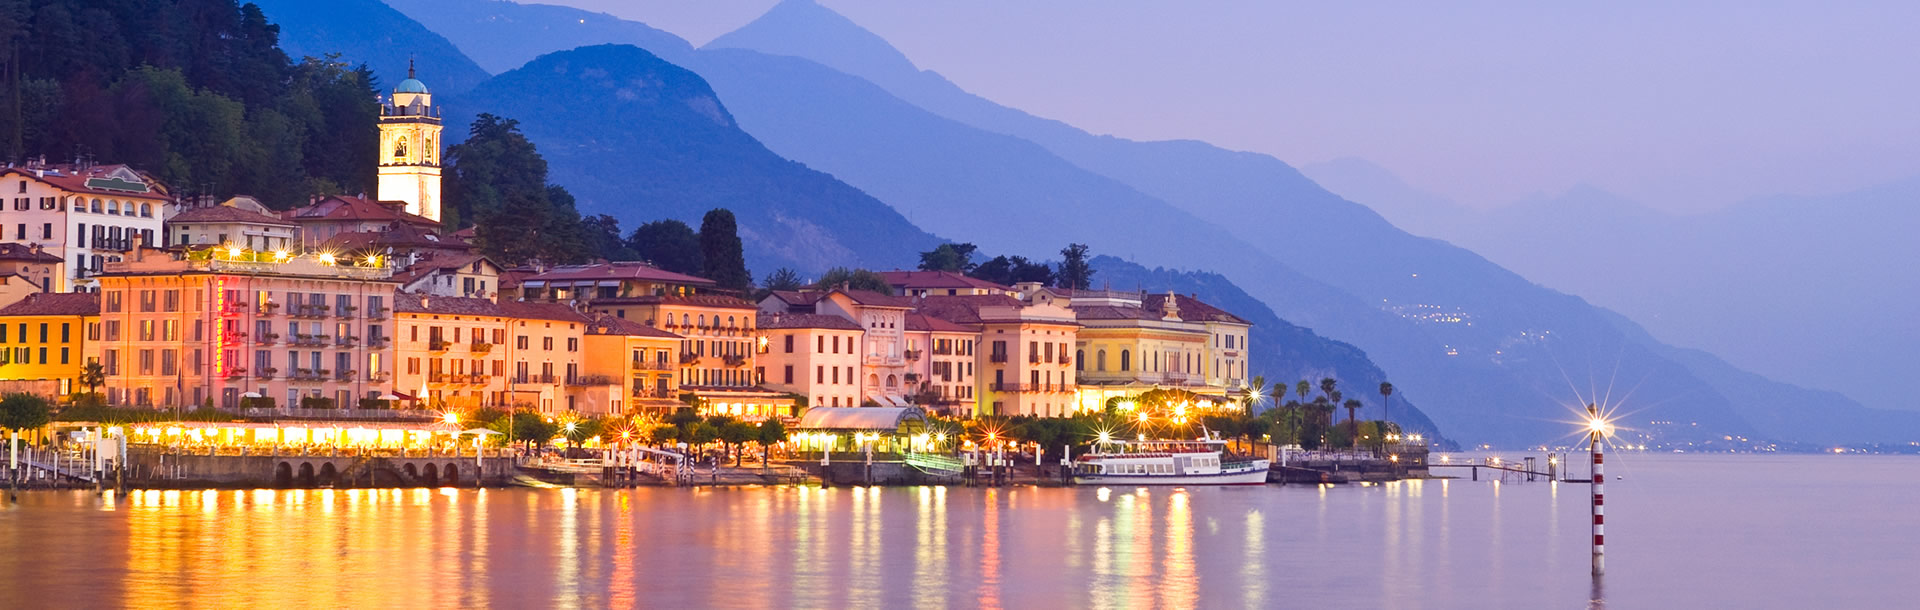 Travel Insurance Services Bellagio - Lake Como